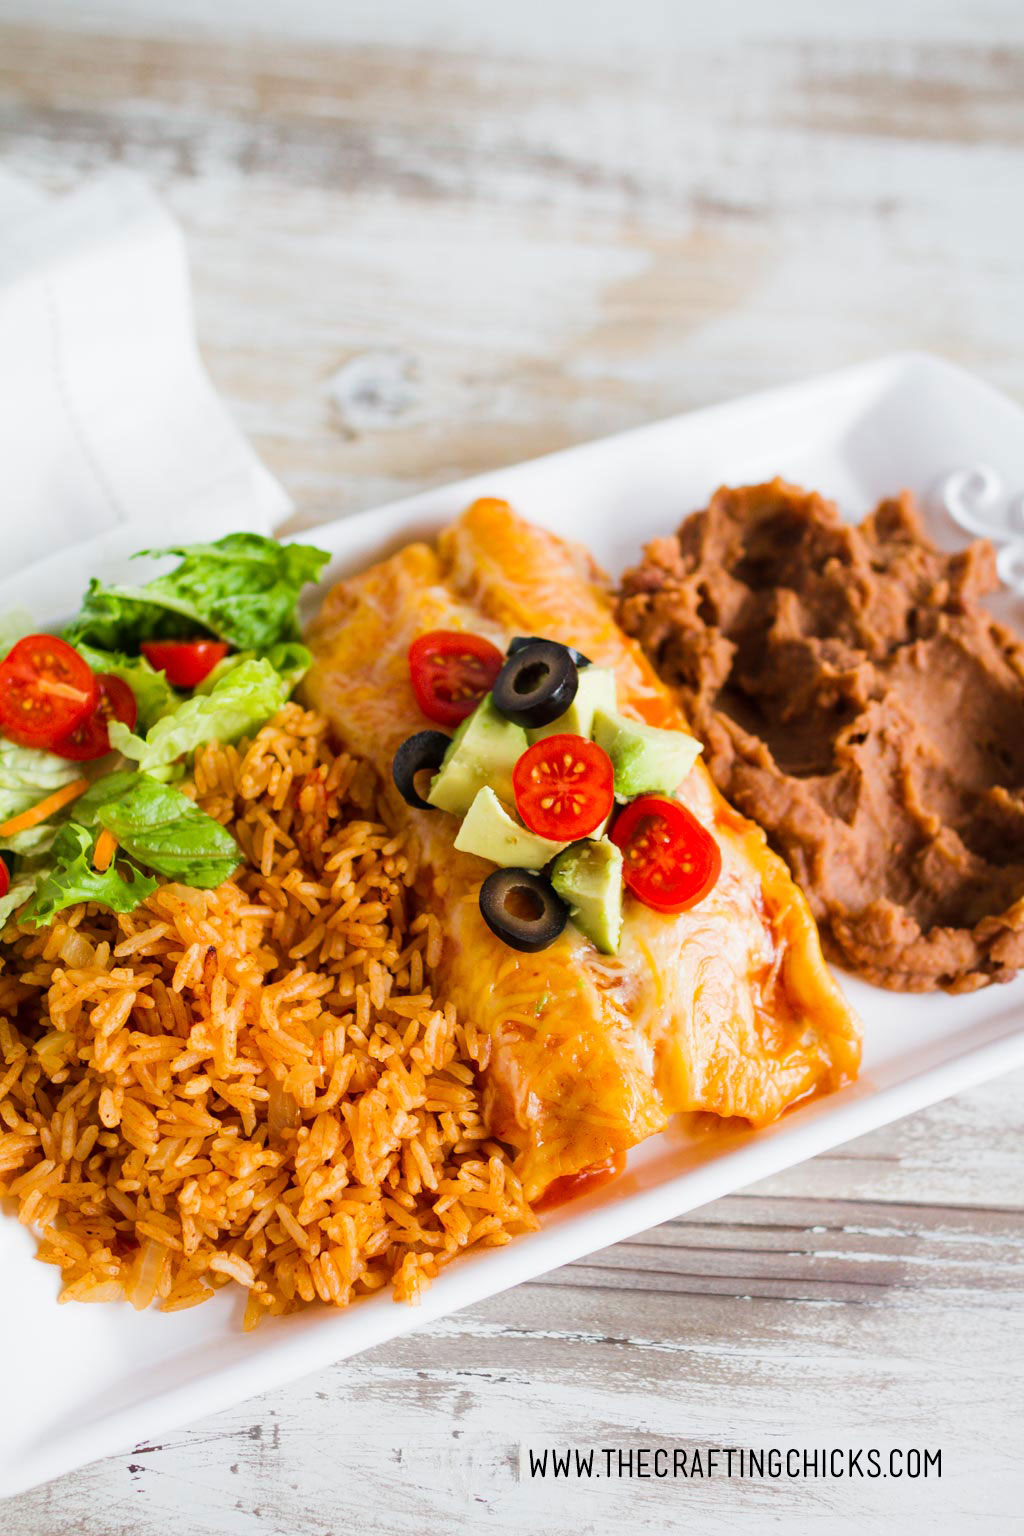 Saw Cooker Salsa Chicken Enchiladas. Serve with Beans salad and rice for a complete meal.